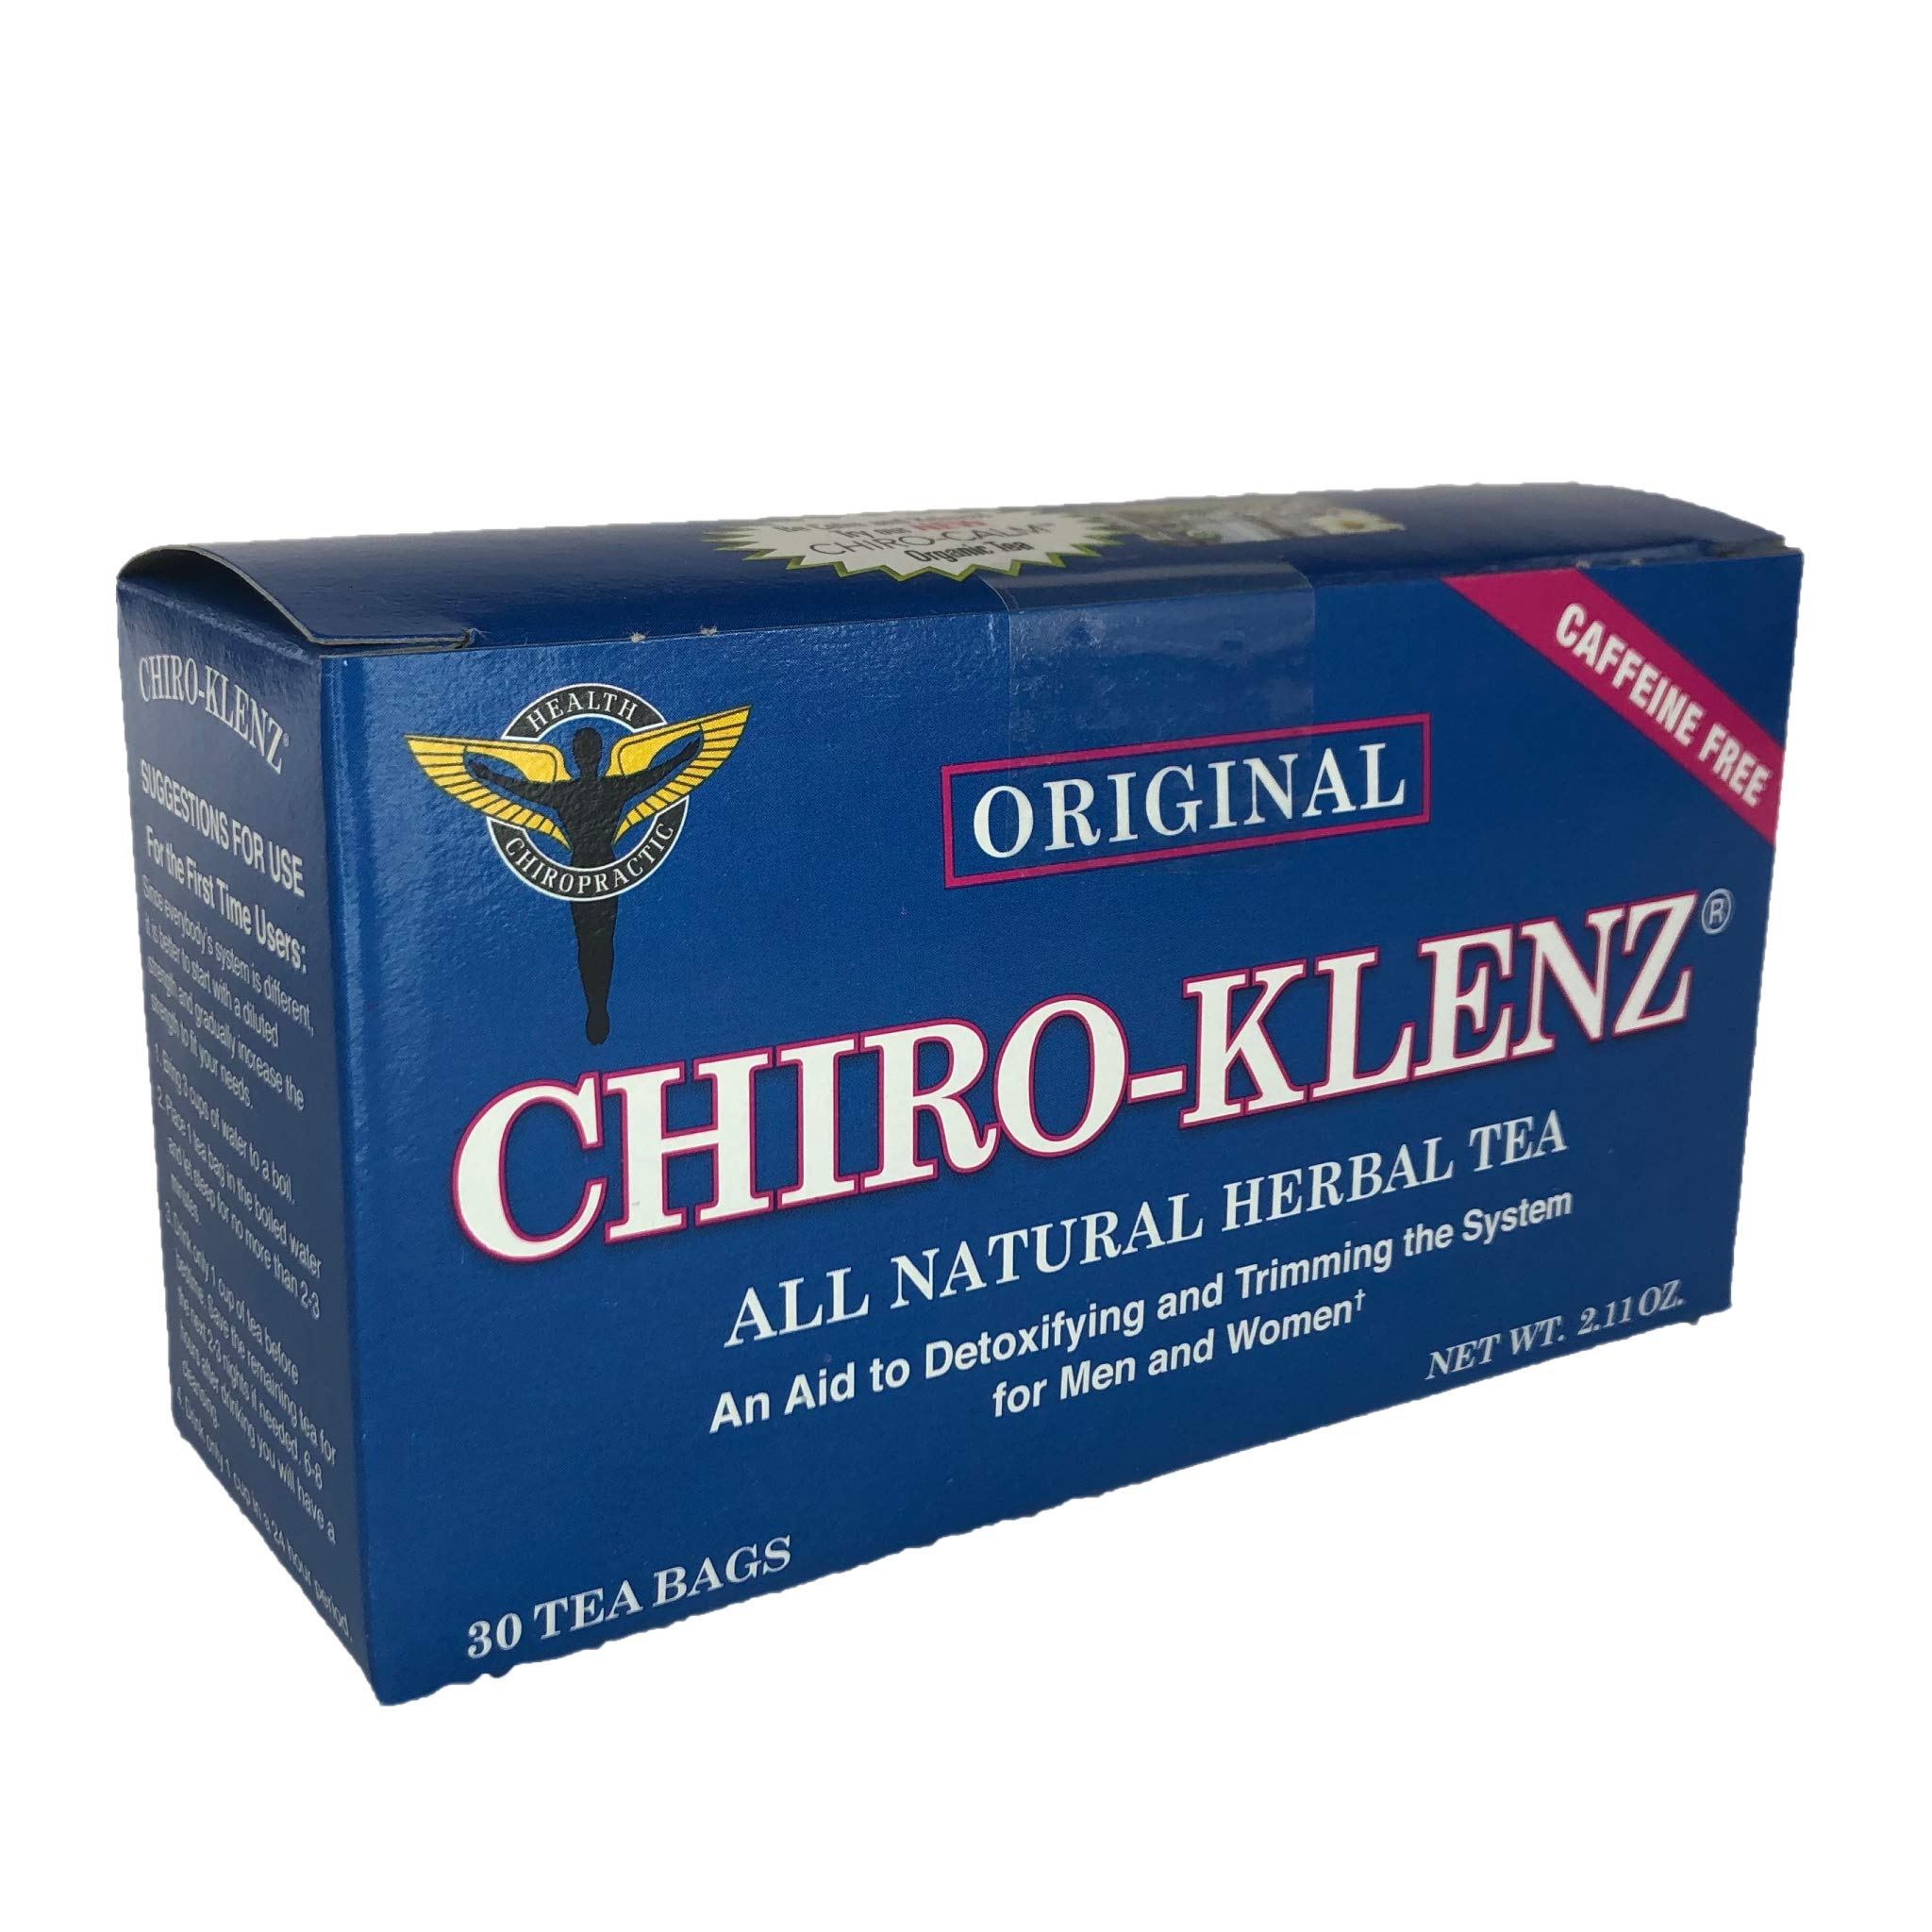 Chiro-Klenz All Natural Herbal Tea -Chiro-Klenz Original | Detox, Cleansing Tea | Supports Weight Loss | Relieves Constipation | All Natural, Caffeine Free 30 Teabags